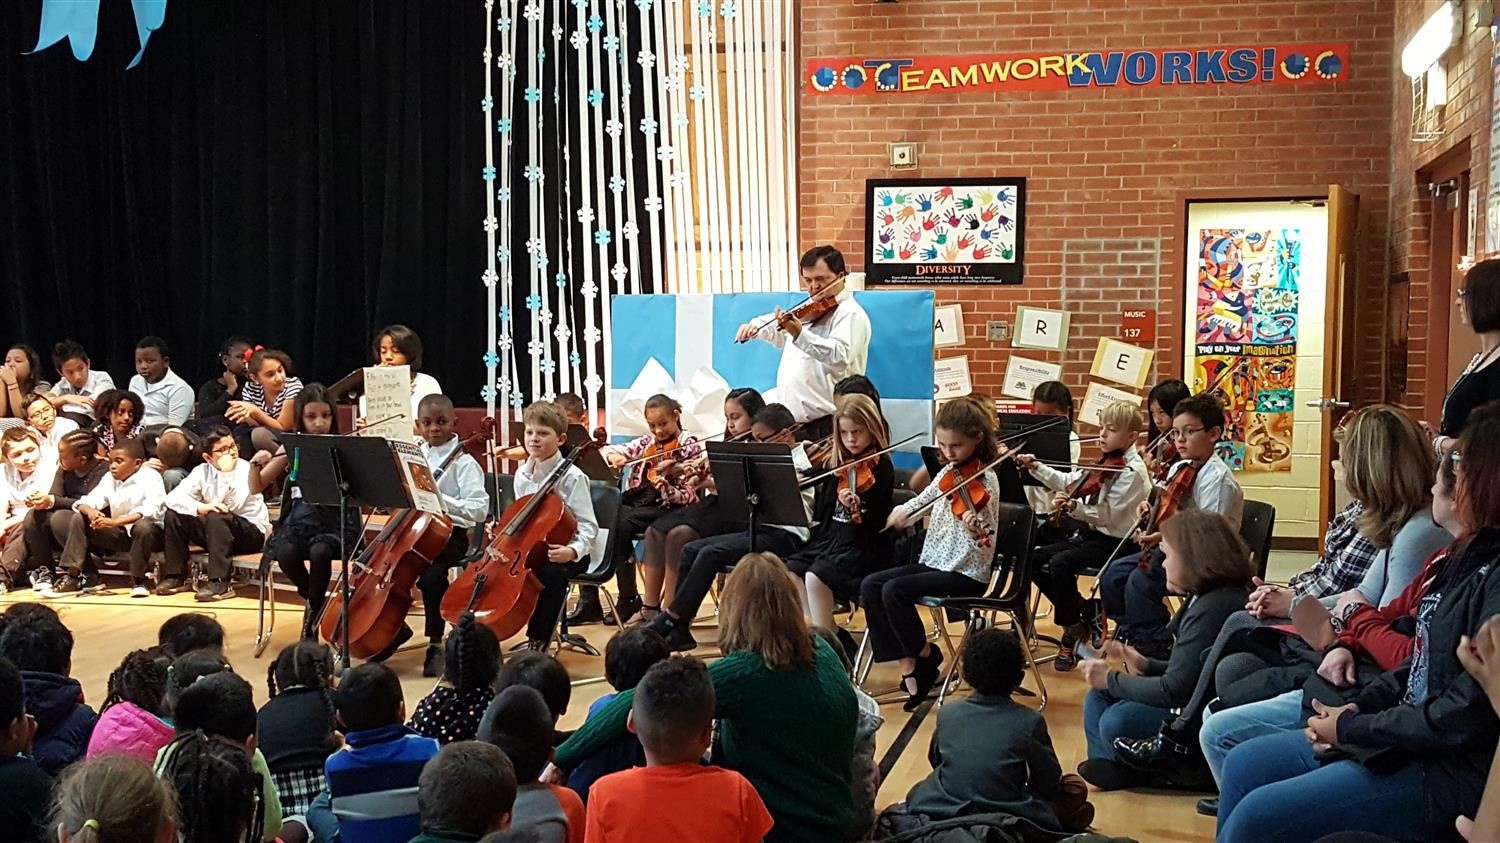 Students playing instruments at a school orchestra concert